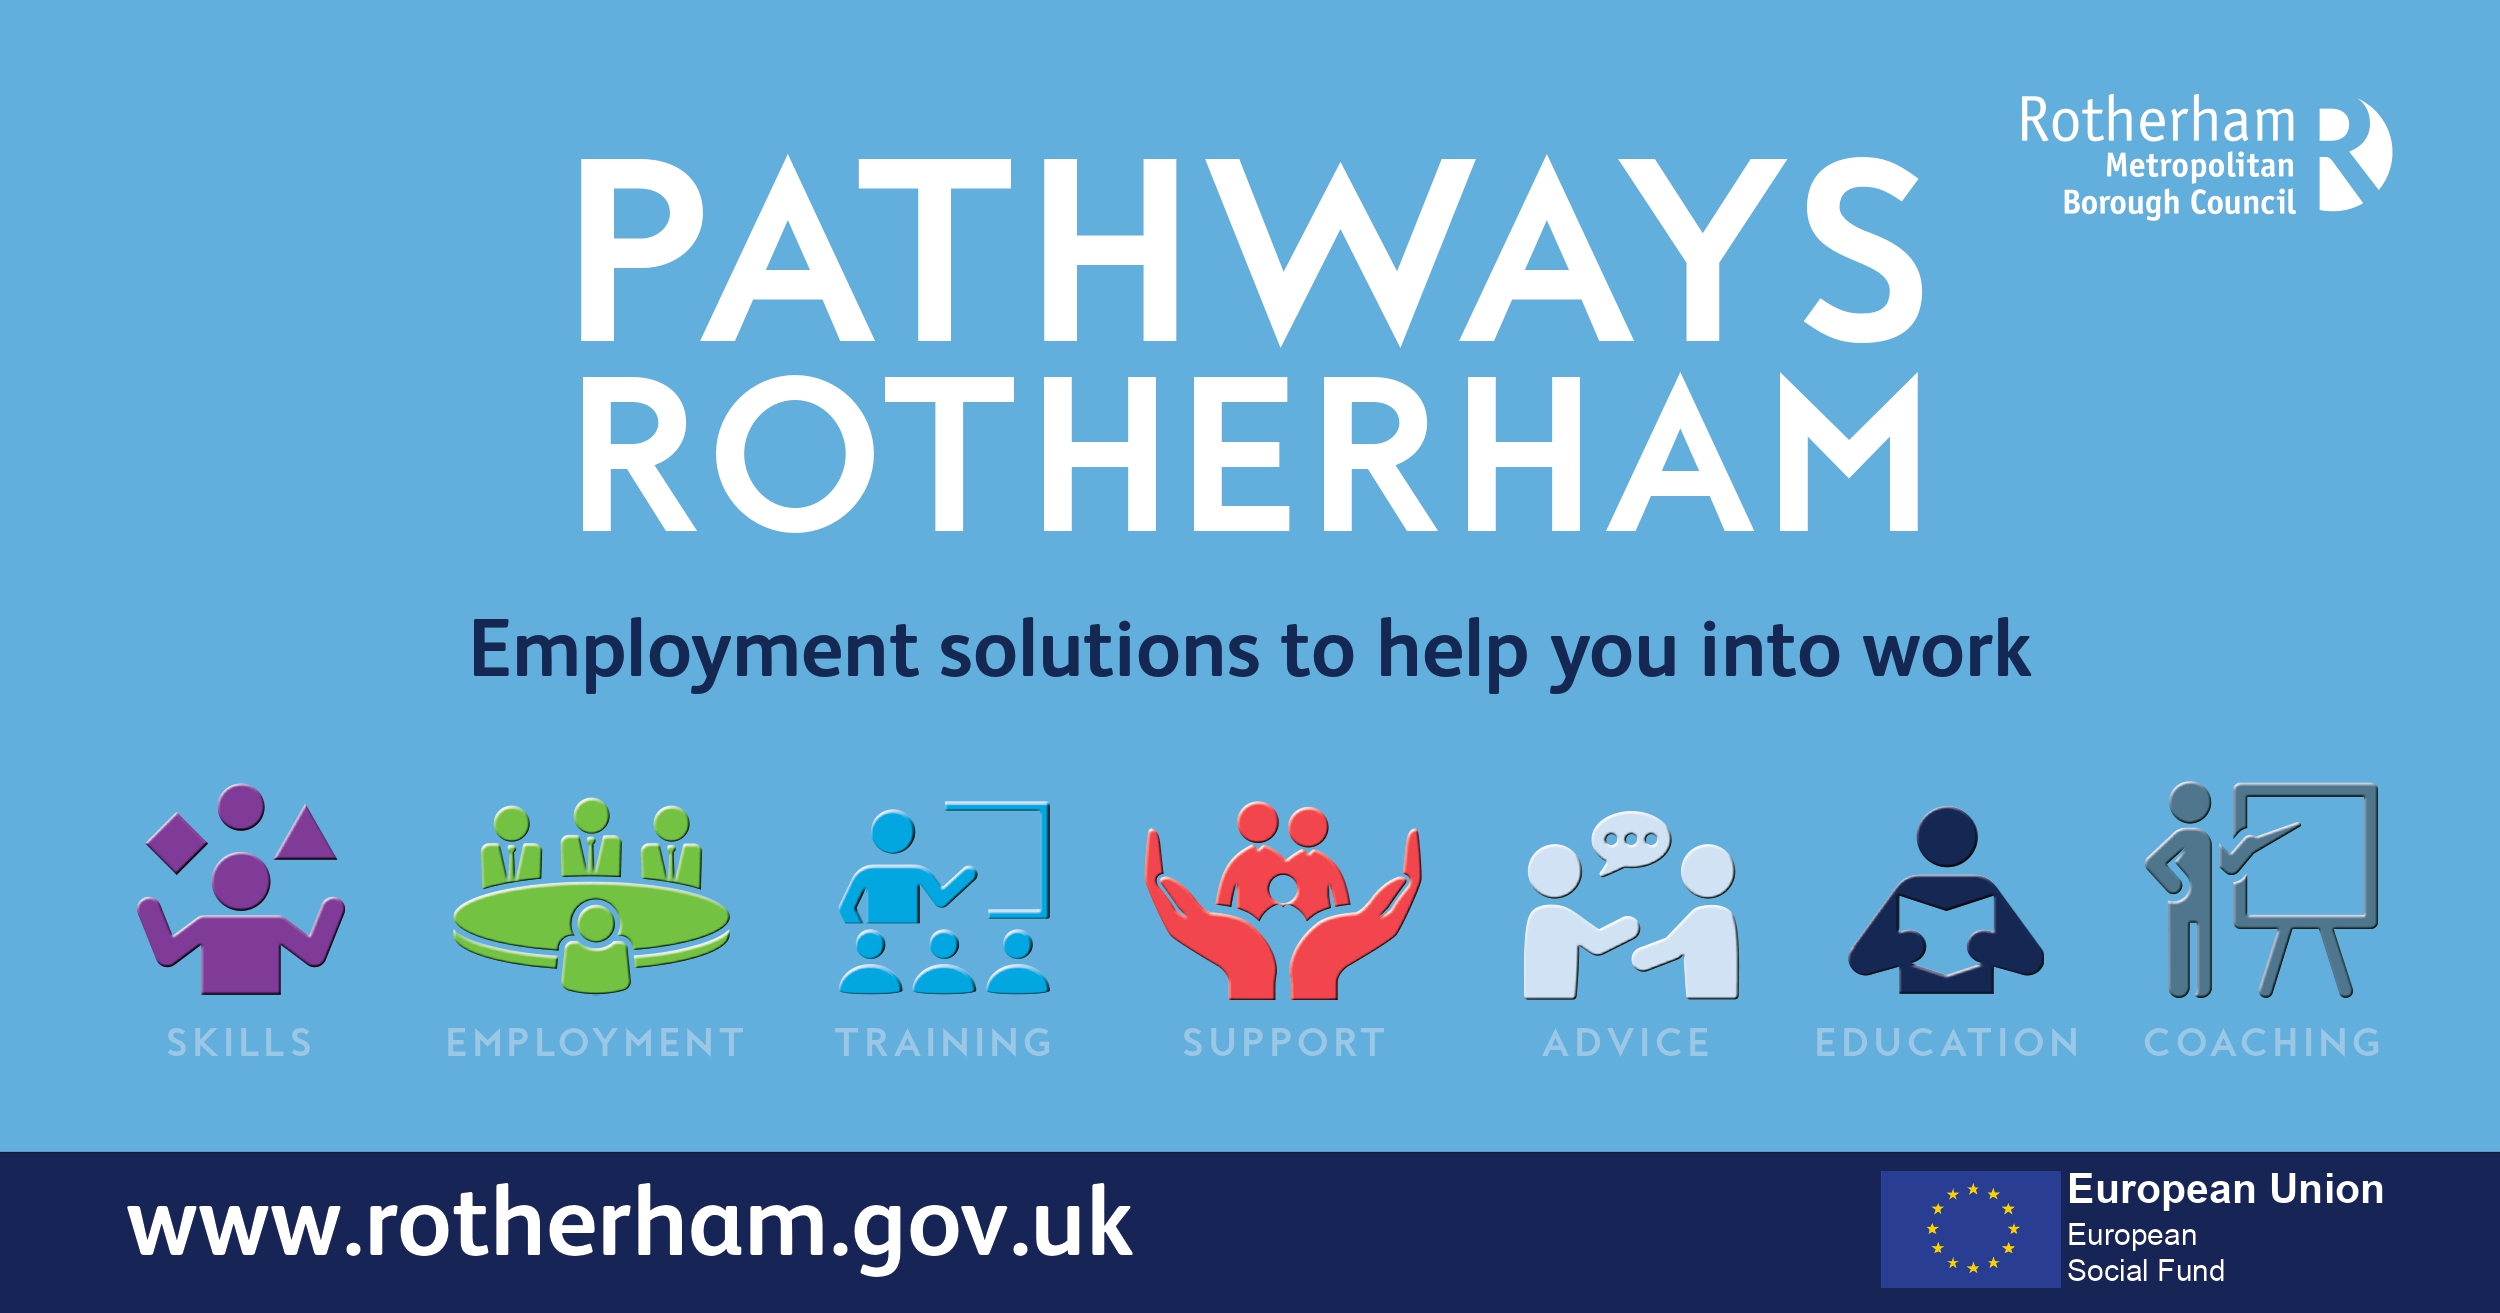 Pathways Rotherham - Skills, employment, training, support, advice, education and coaching